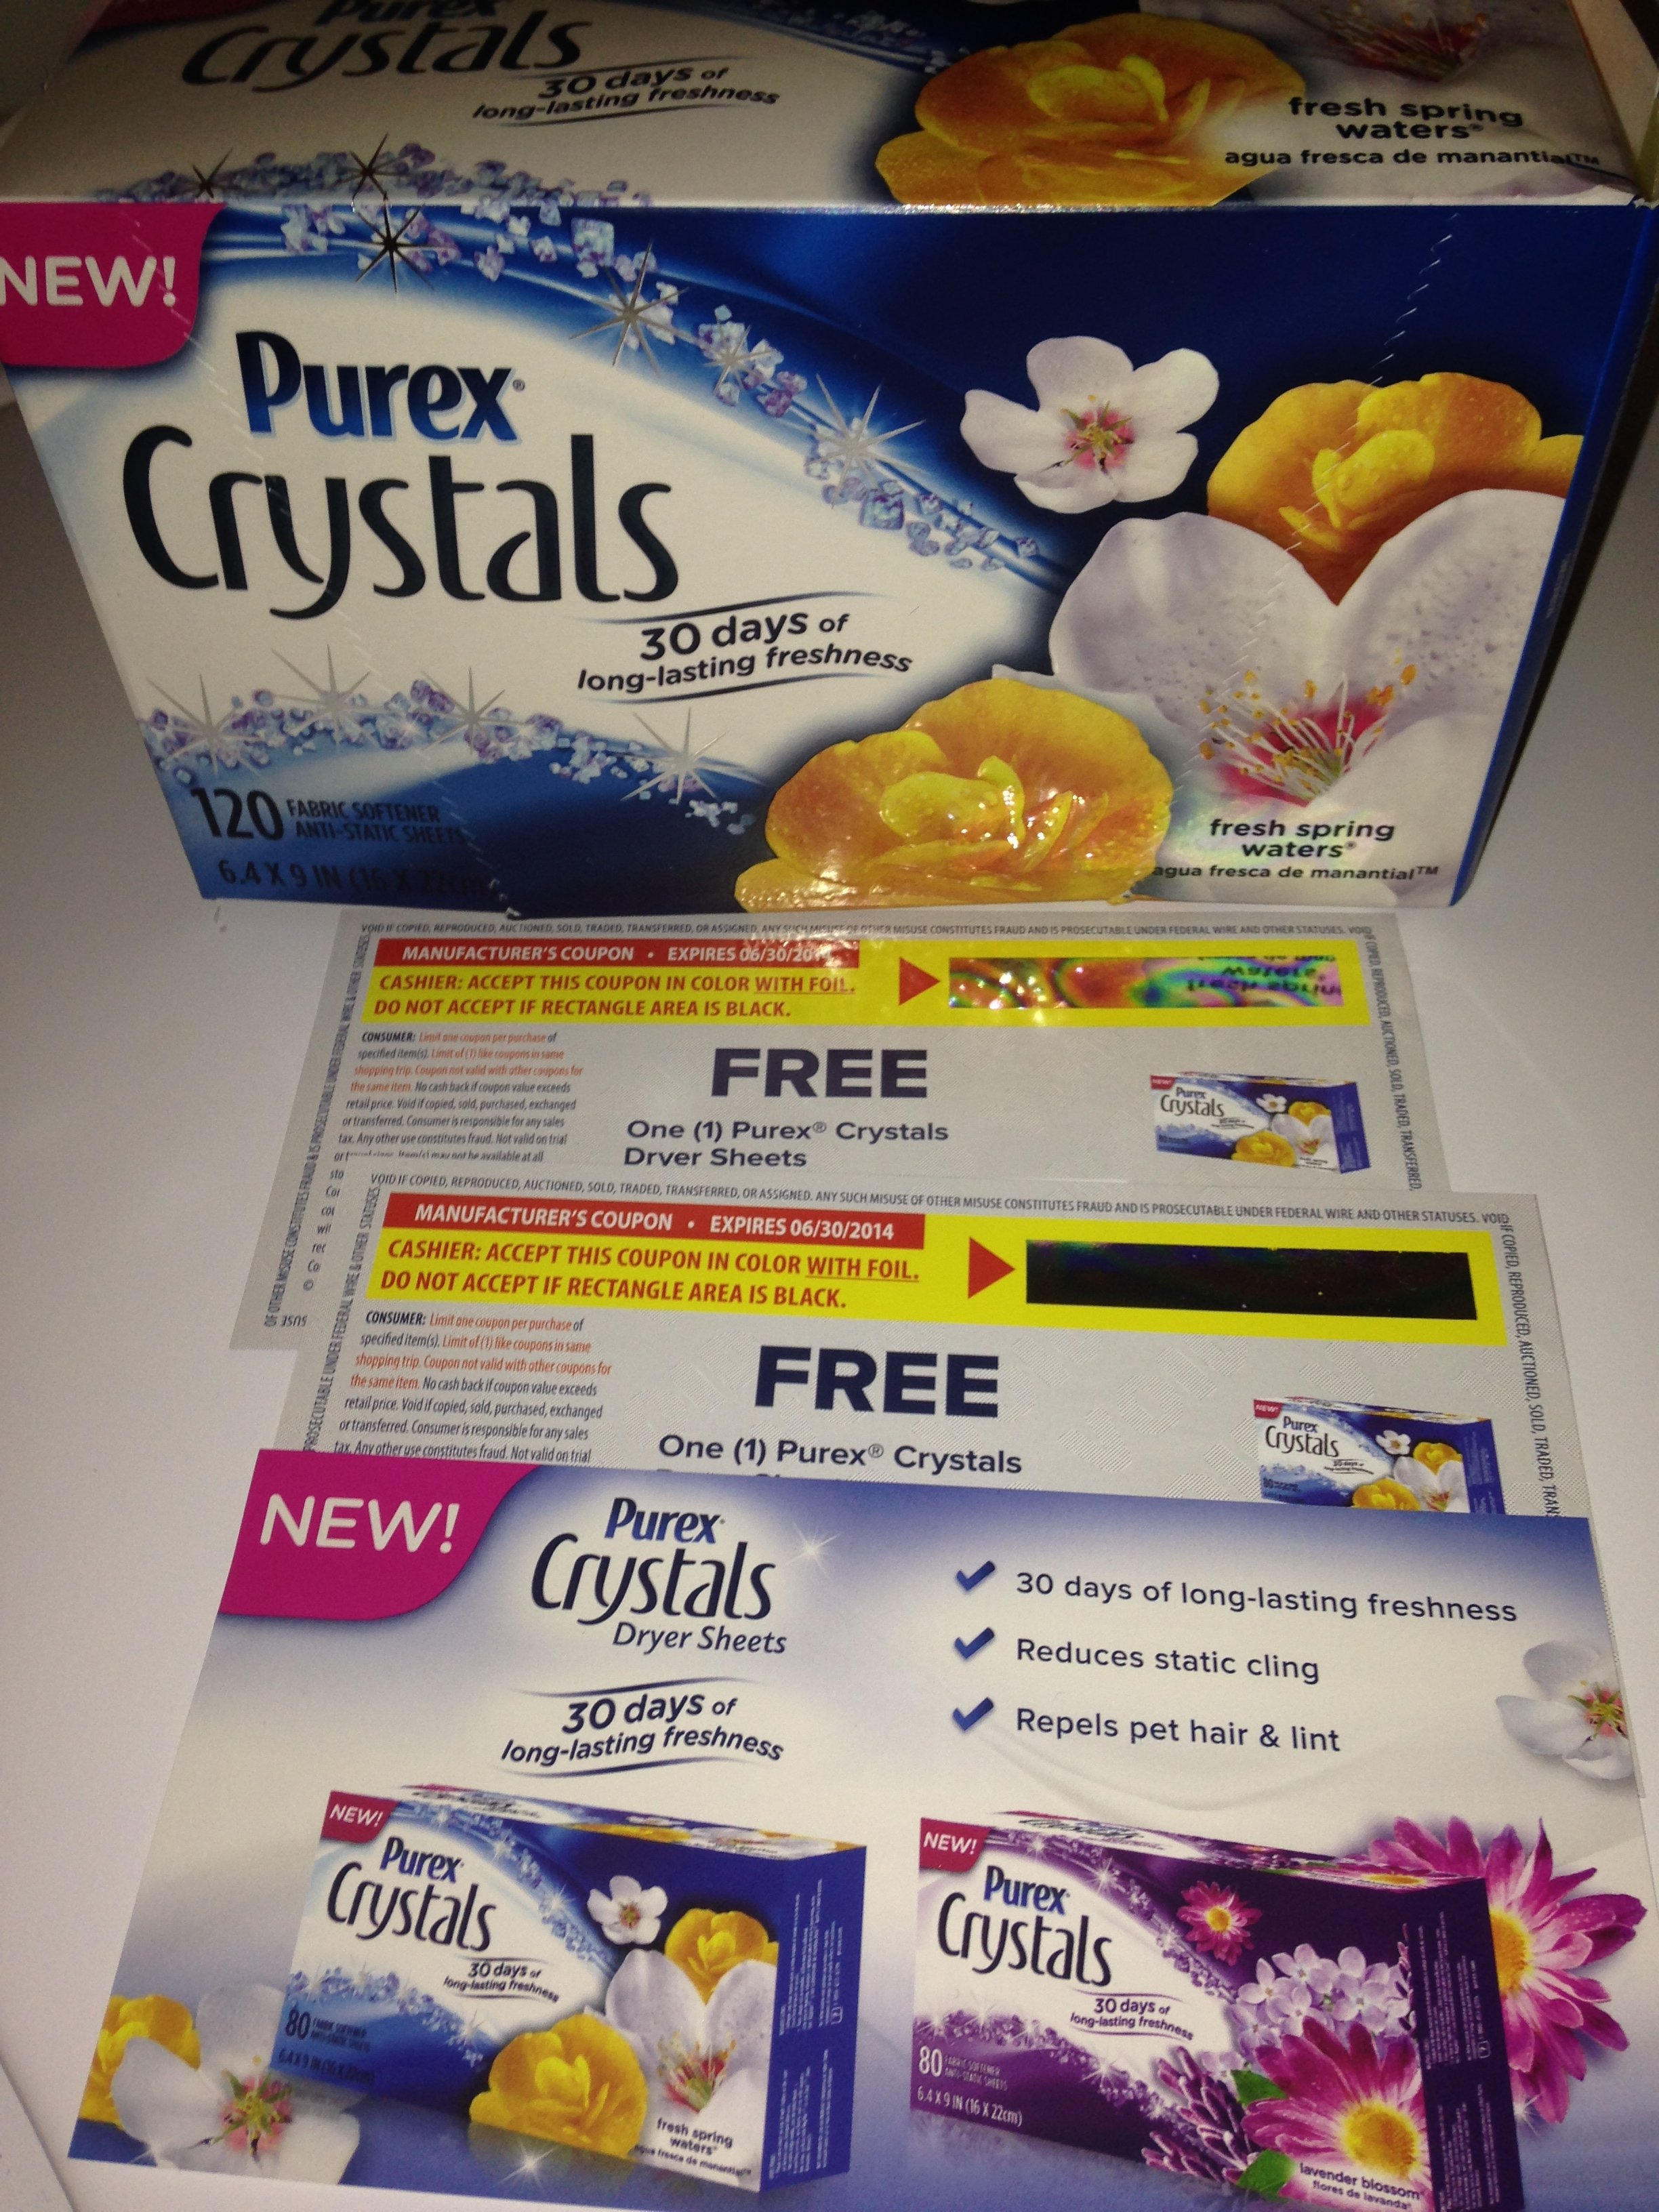 Purex Crystals Dryer Sheet Giveaway & WIN $500!